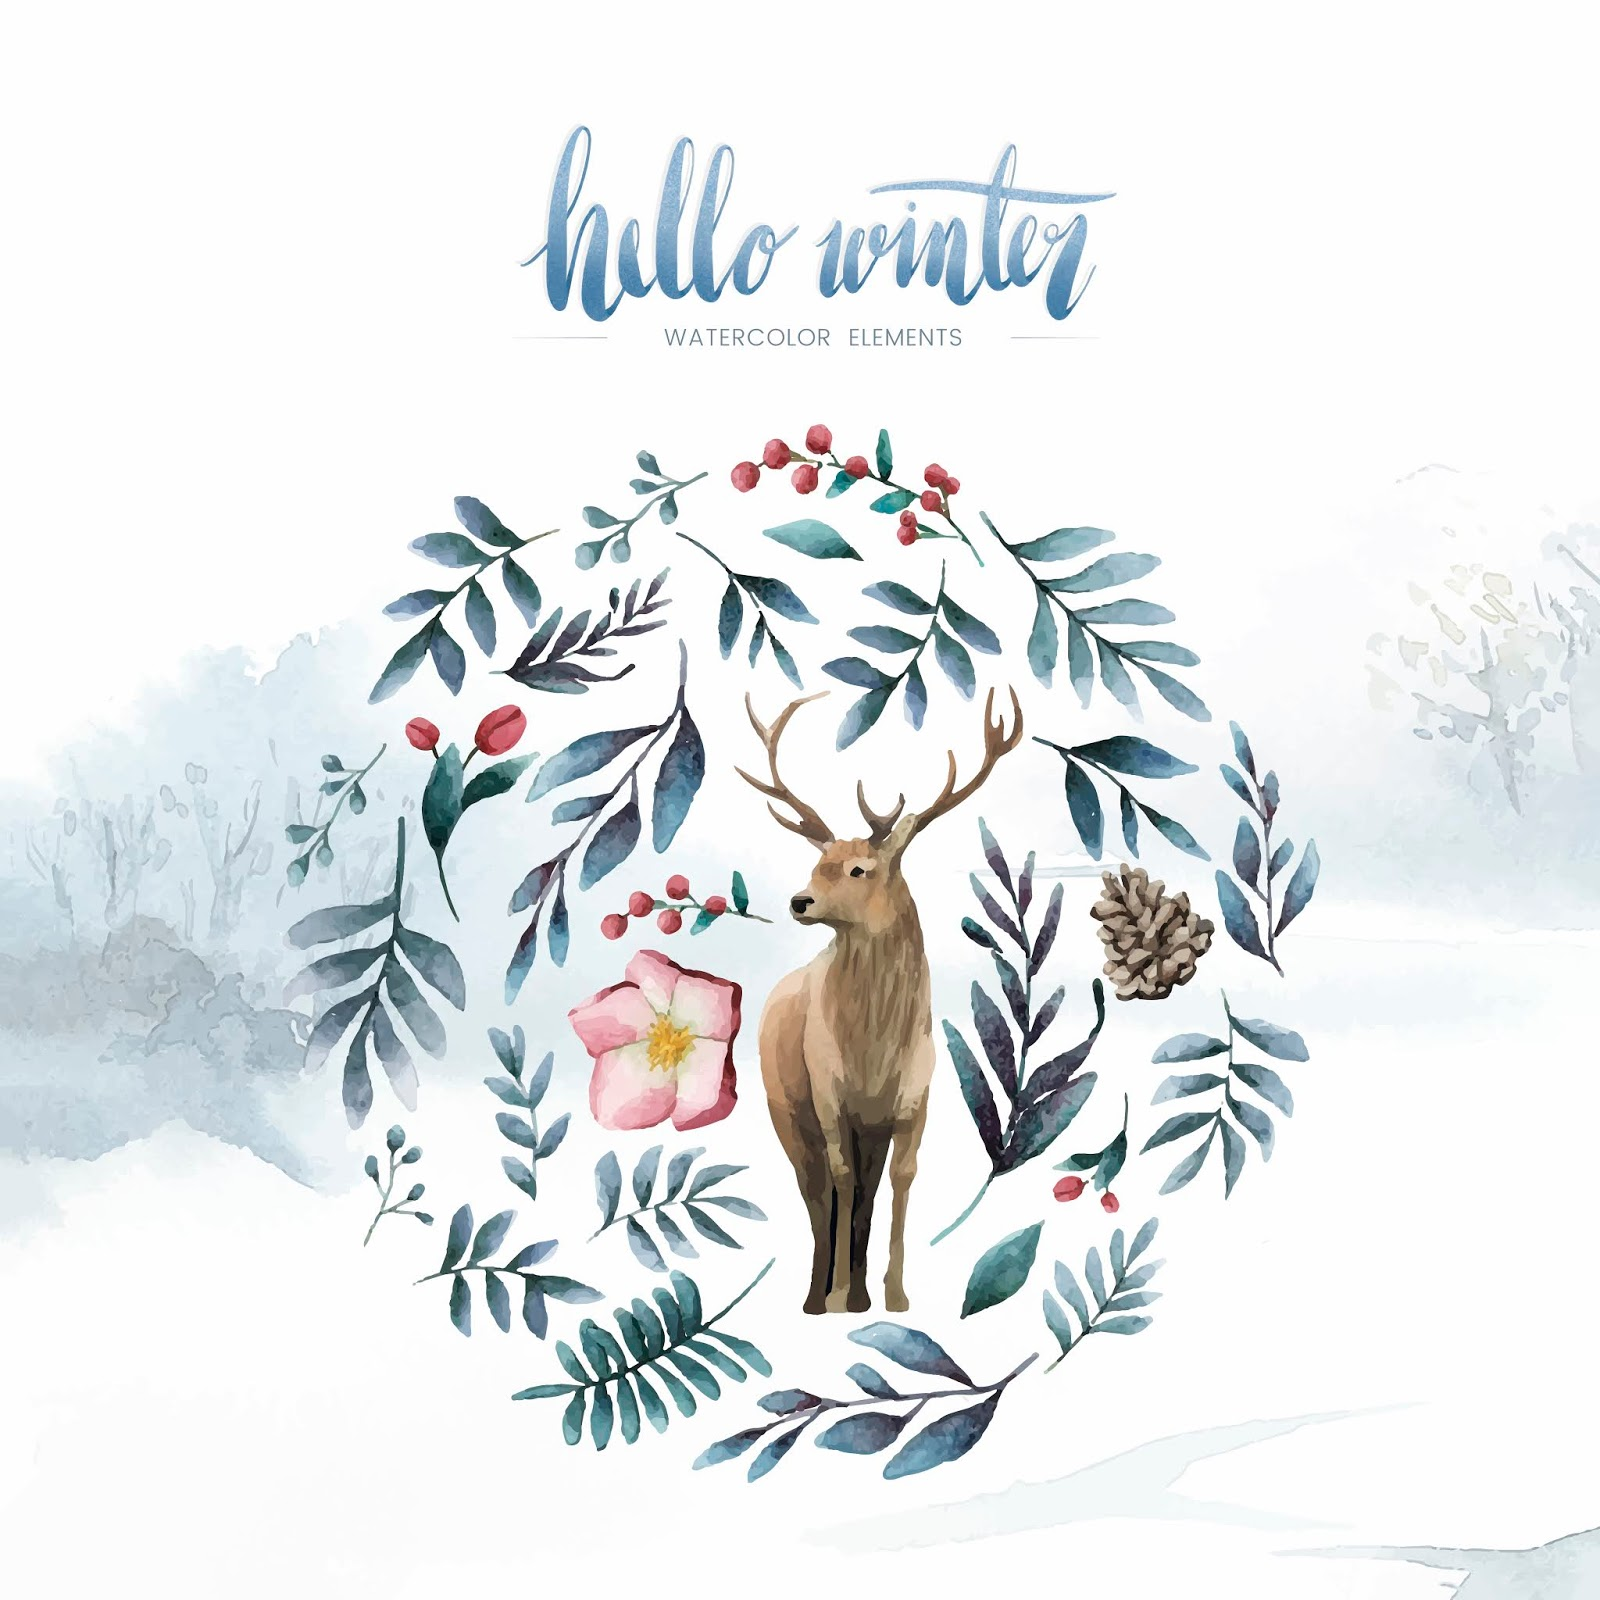 Deer Surrounded By Winter Bloom Watercolor Vector Free Download Vector CDR, AI, EPS and PNG Formats